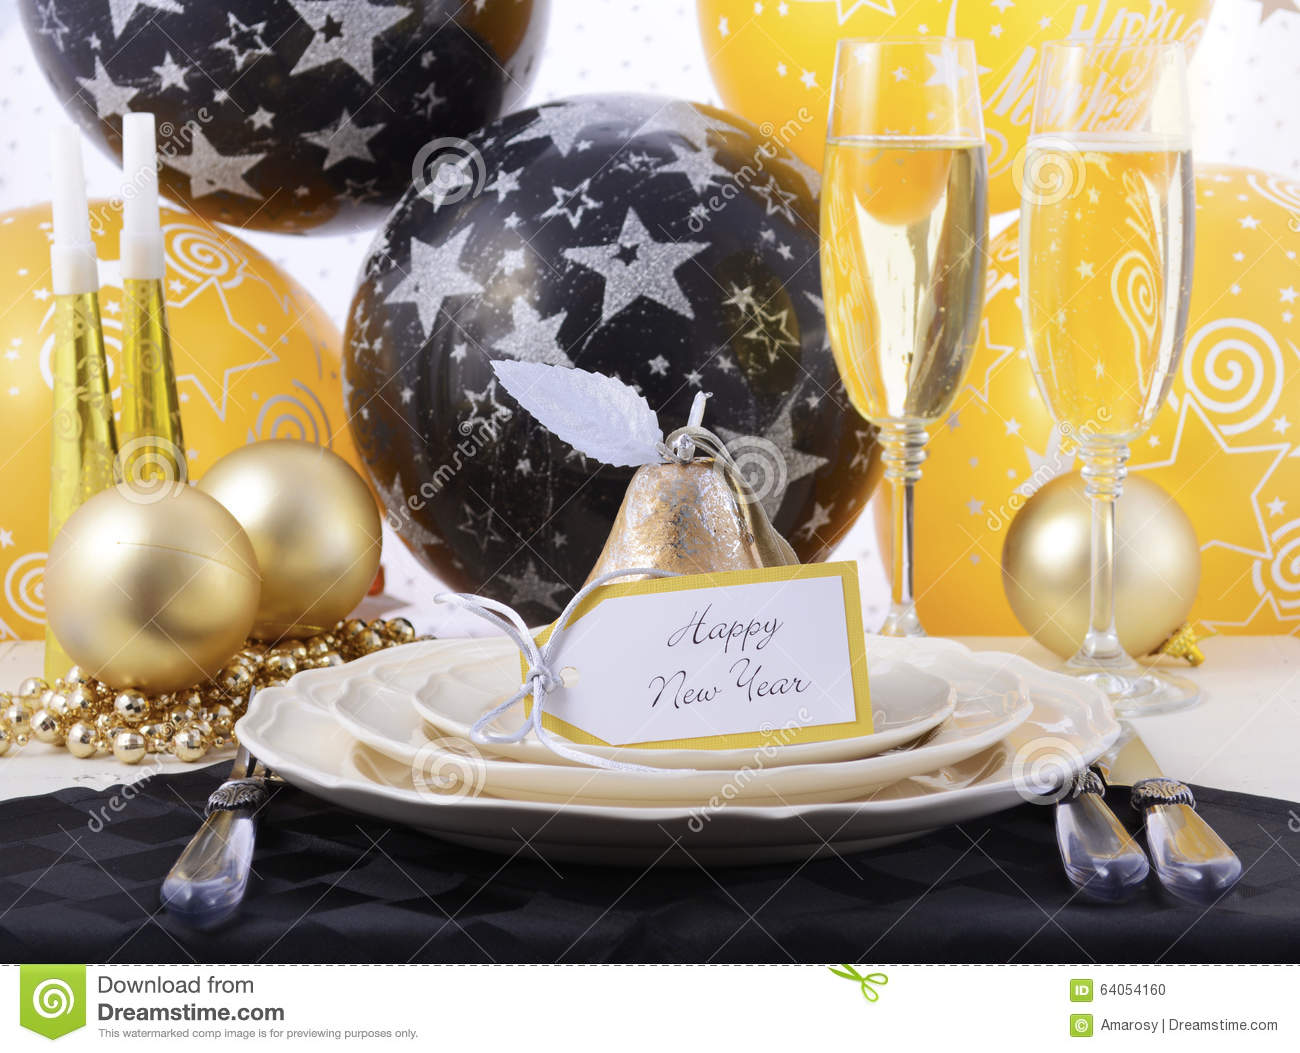 New years eve dinner table place setting stock photo - New year dinner table setting ...